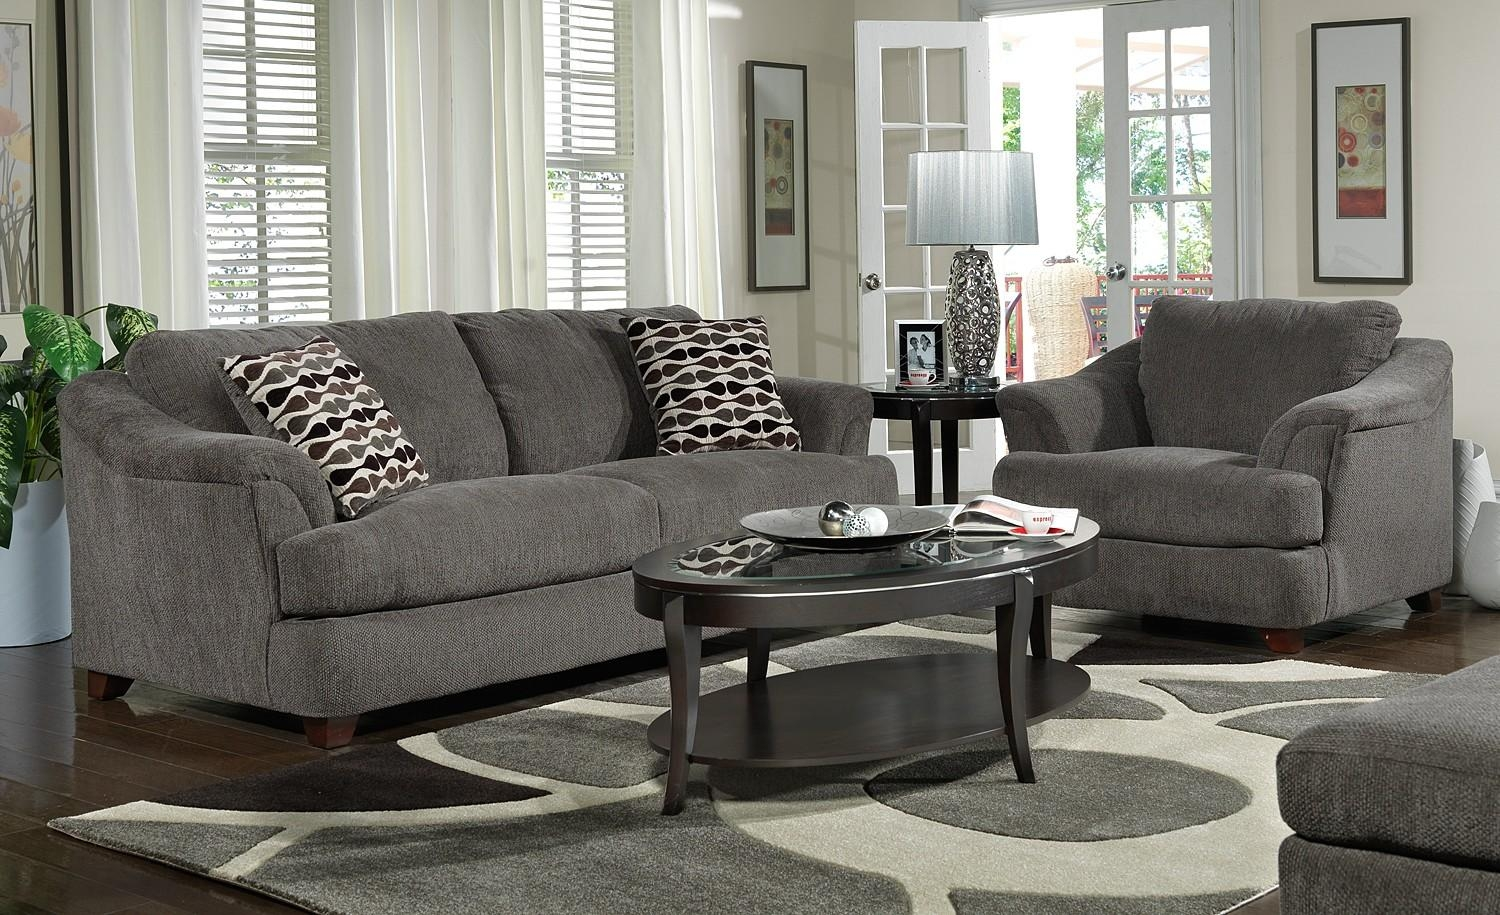 54 Living Rooms With Gray Sofas Grey Sofa Living Room Ideas With Regard To Gray Sofas (Photo 16 of 20)